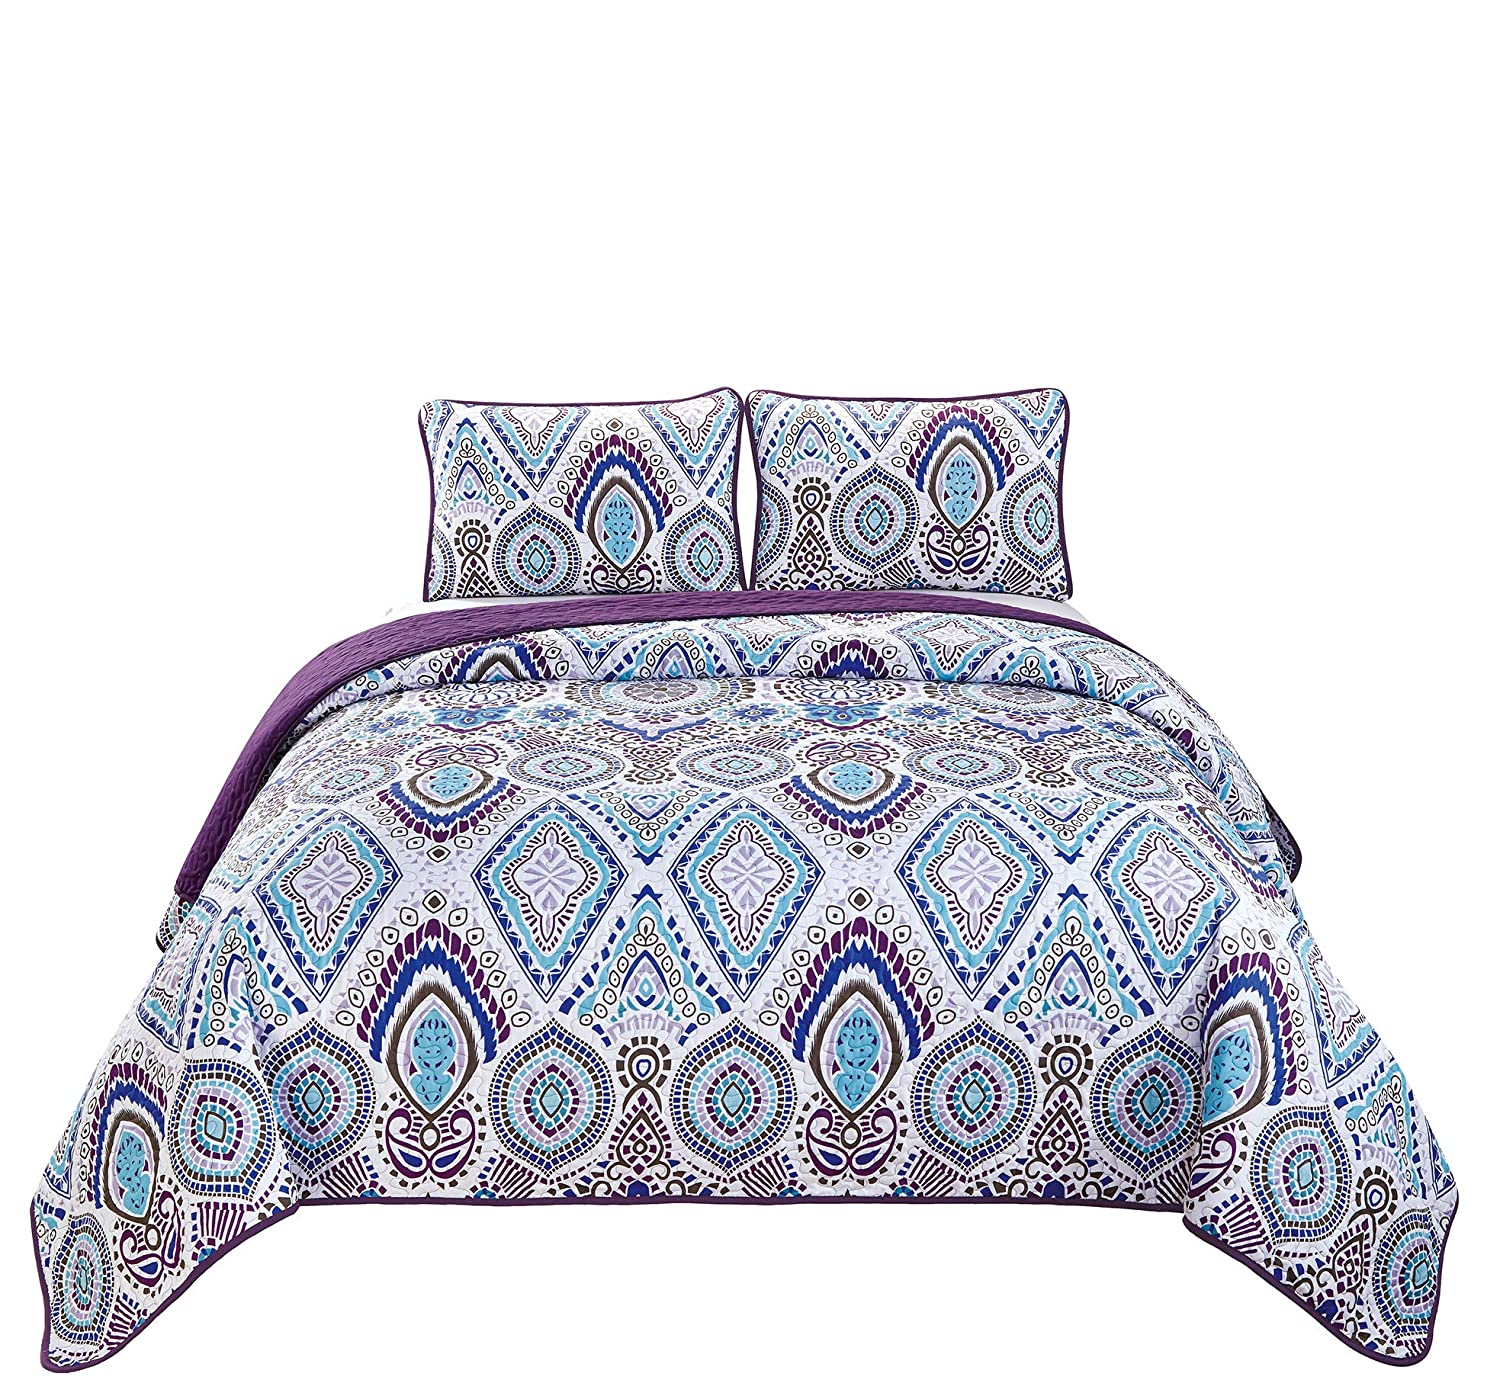 Fancy Linen 3pc King/California King Bedspread Quilt Set Over Size Bed Cover Purple Lavender Blue Grey White New